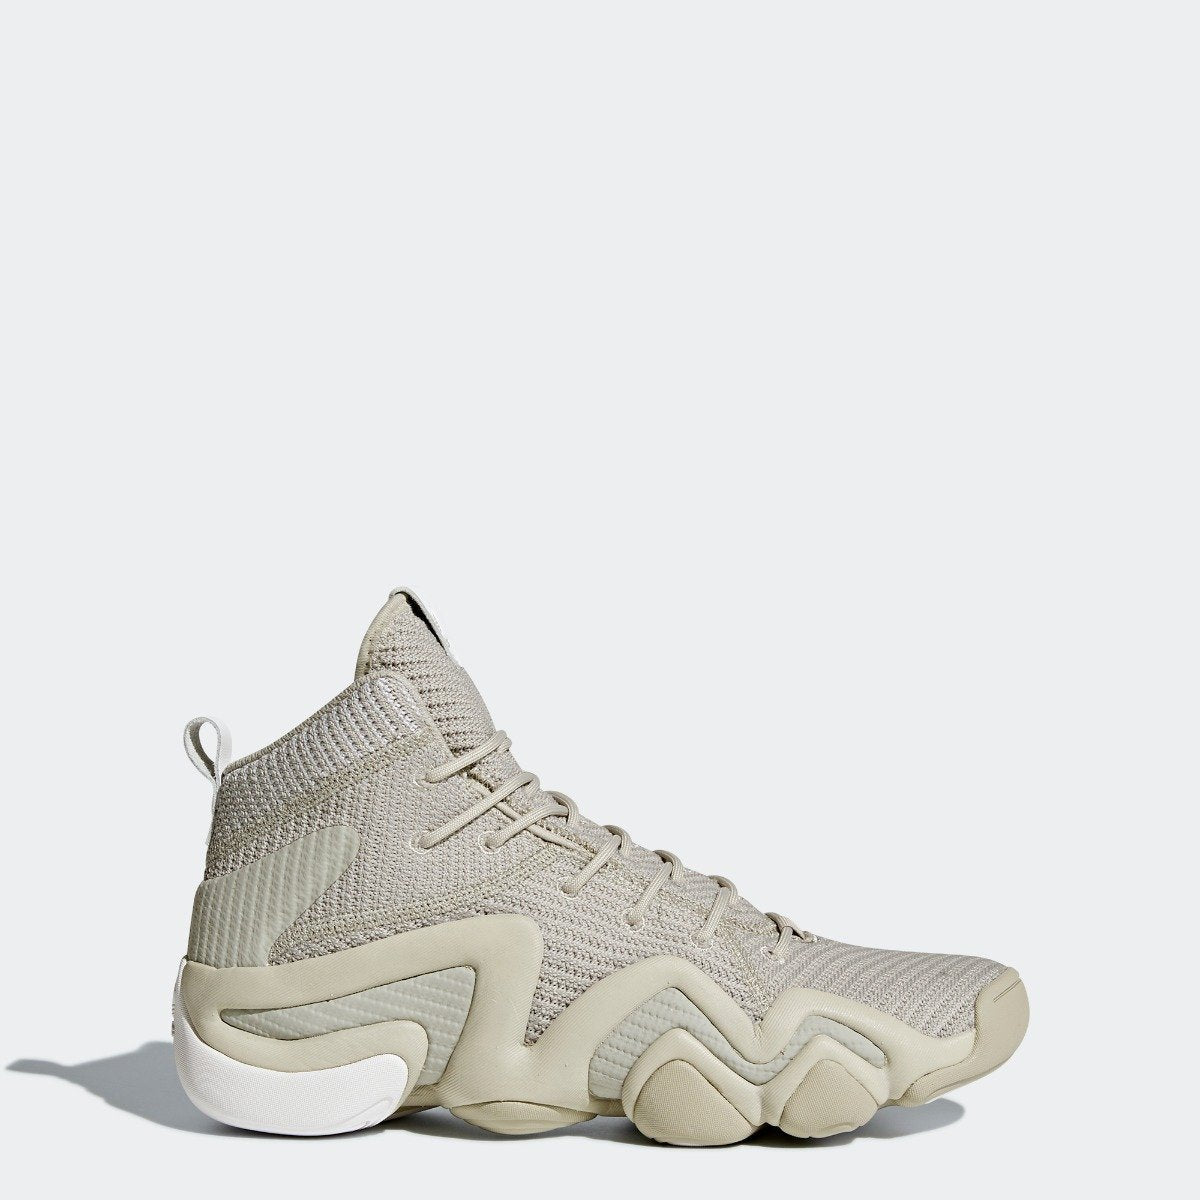 new styles eafe8 87d2c Mens adidas Originals Crazy 8 ADV Primeknit Shoes Sesame with White